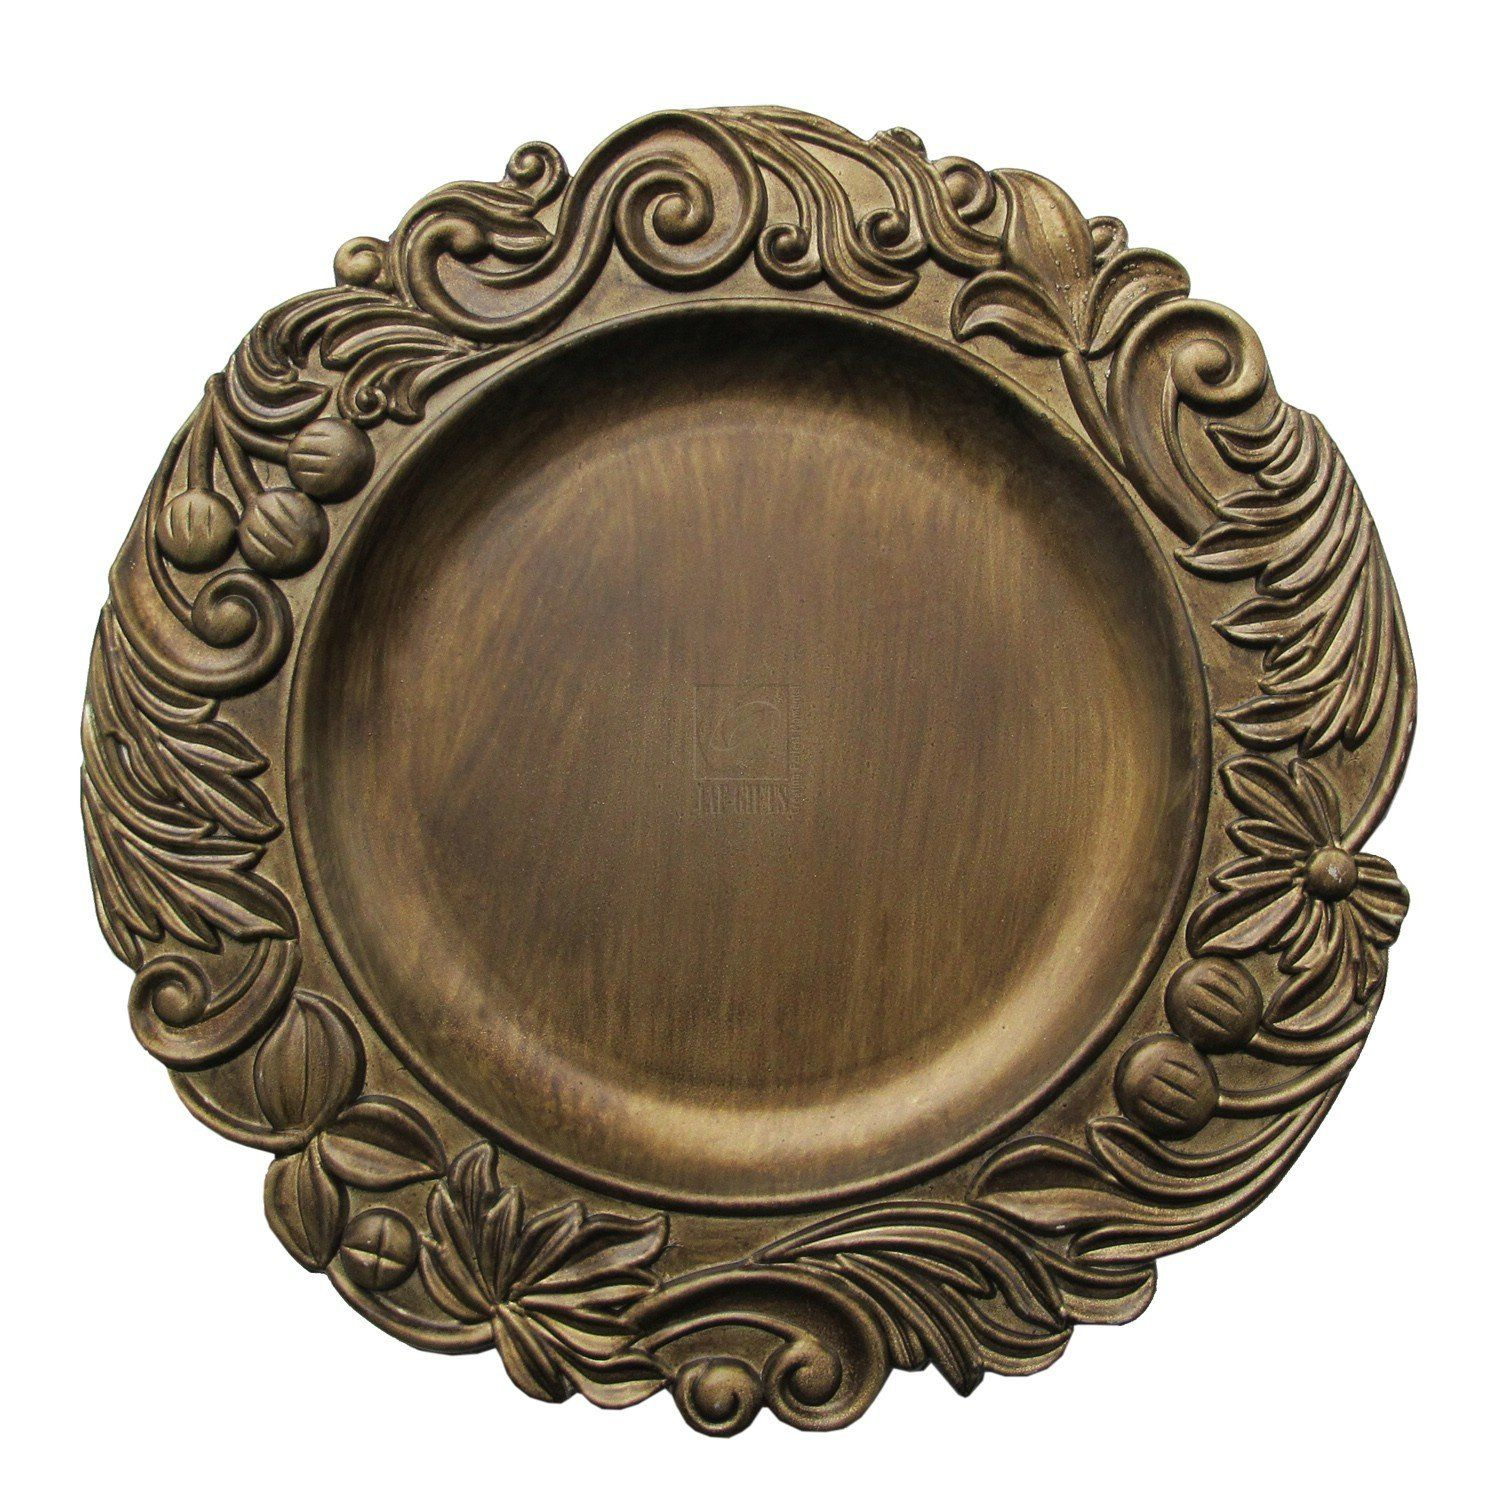 wholesale plate charger pin wood decorative brown motif event decor melamine chargers solutions